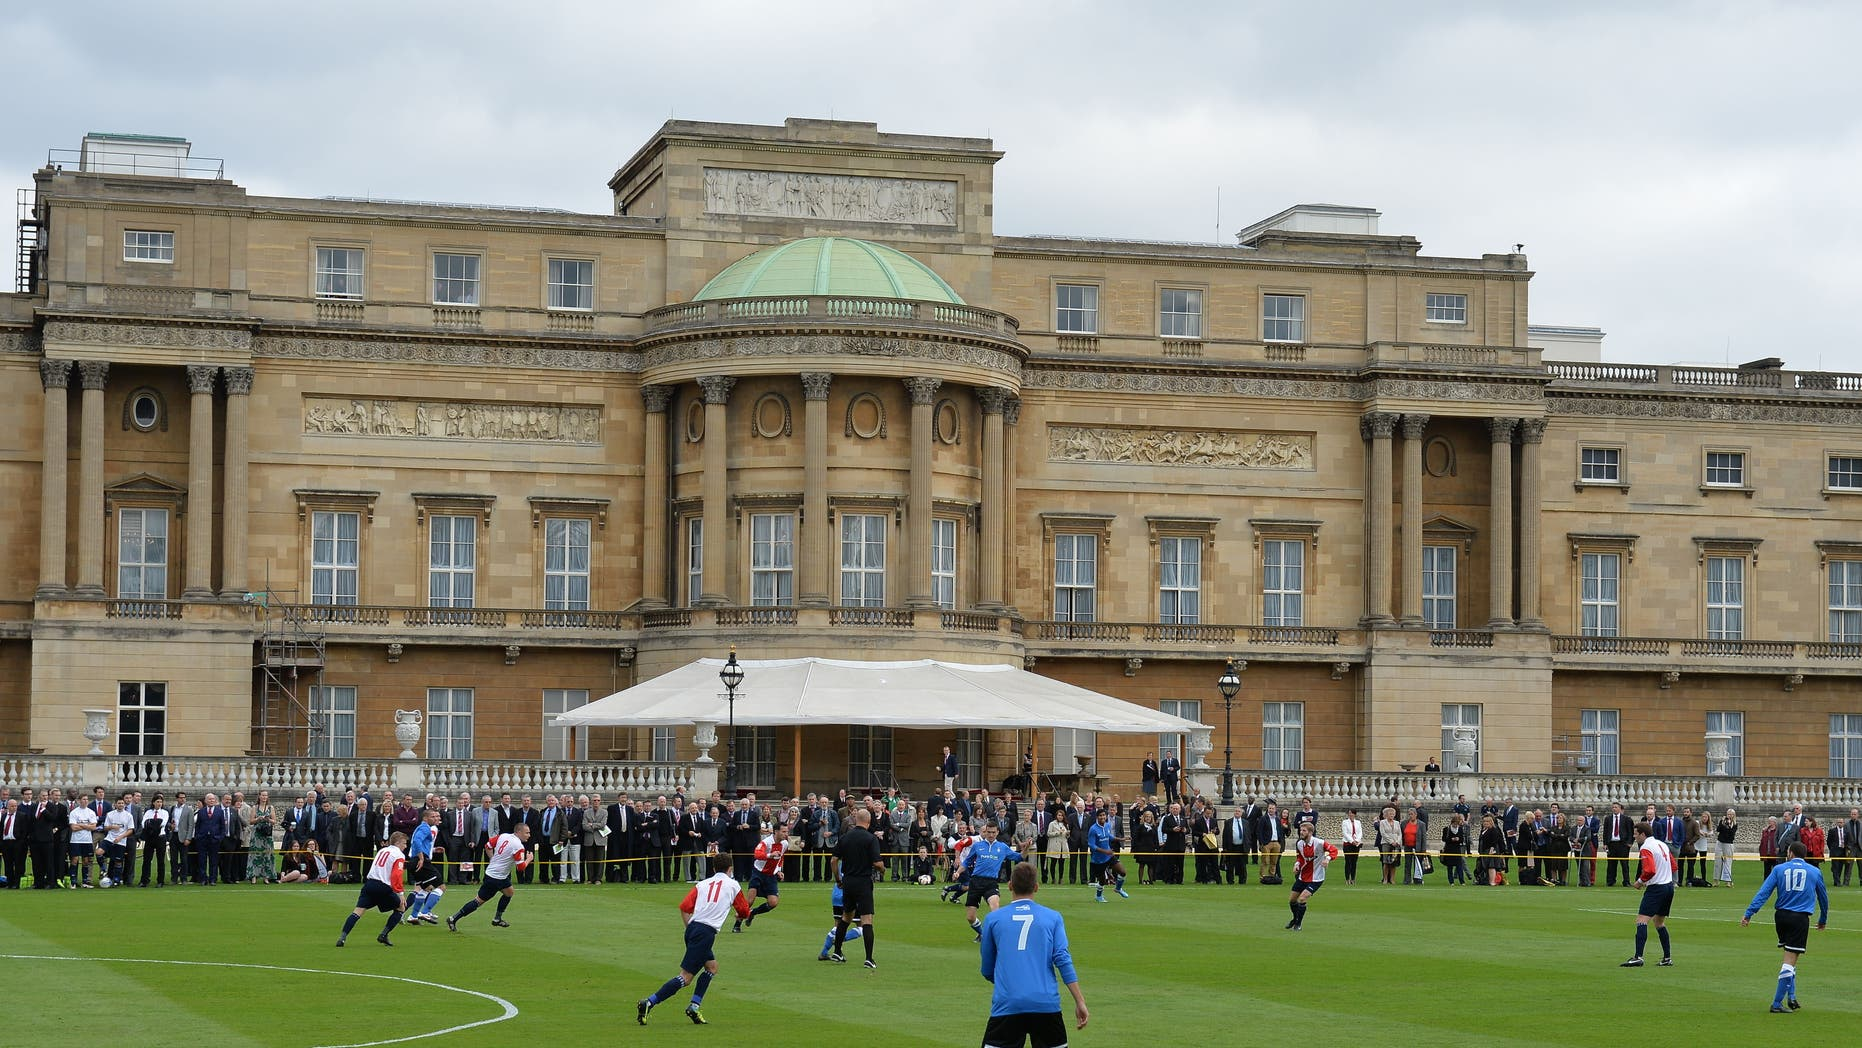 Oct. 7, 2013. - Polytechnic FC (in blue), during their match with the Civil Service FC in Buckingham Palace's garden, central London. The Duke of Cambridge helped organize the event, the first of its kind at Queen Elizabeth II's London home, as part of the Football Association's 150th anniversary celebrations.